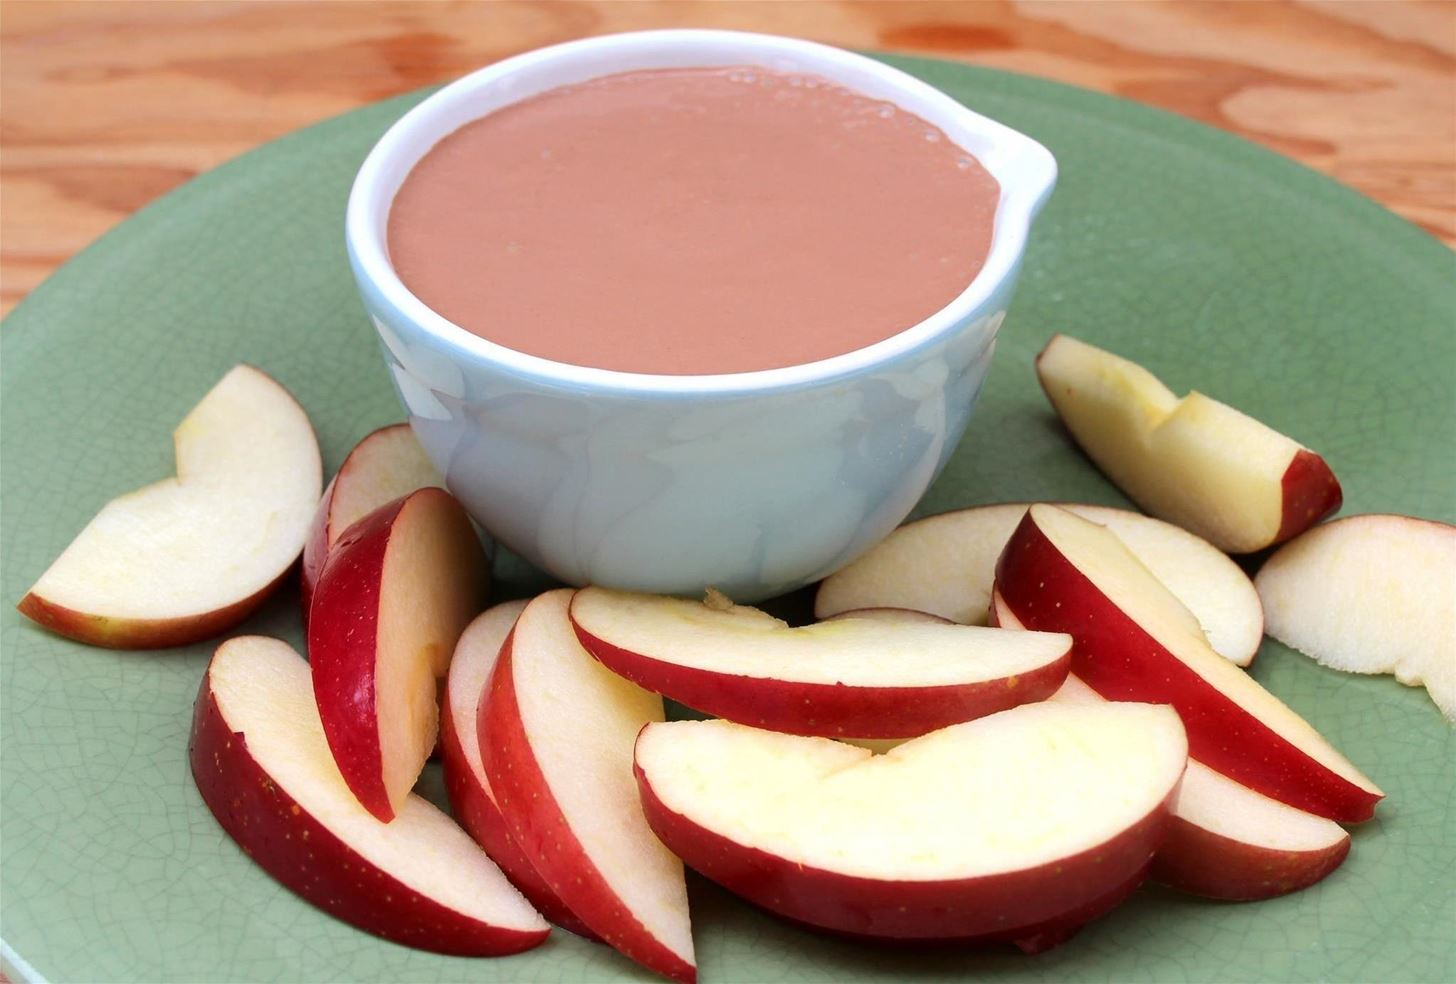 This Awesome 3-Ingredient Fruit Dip Will Change the Way You Snack